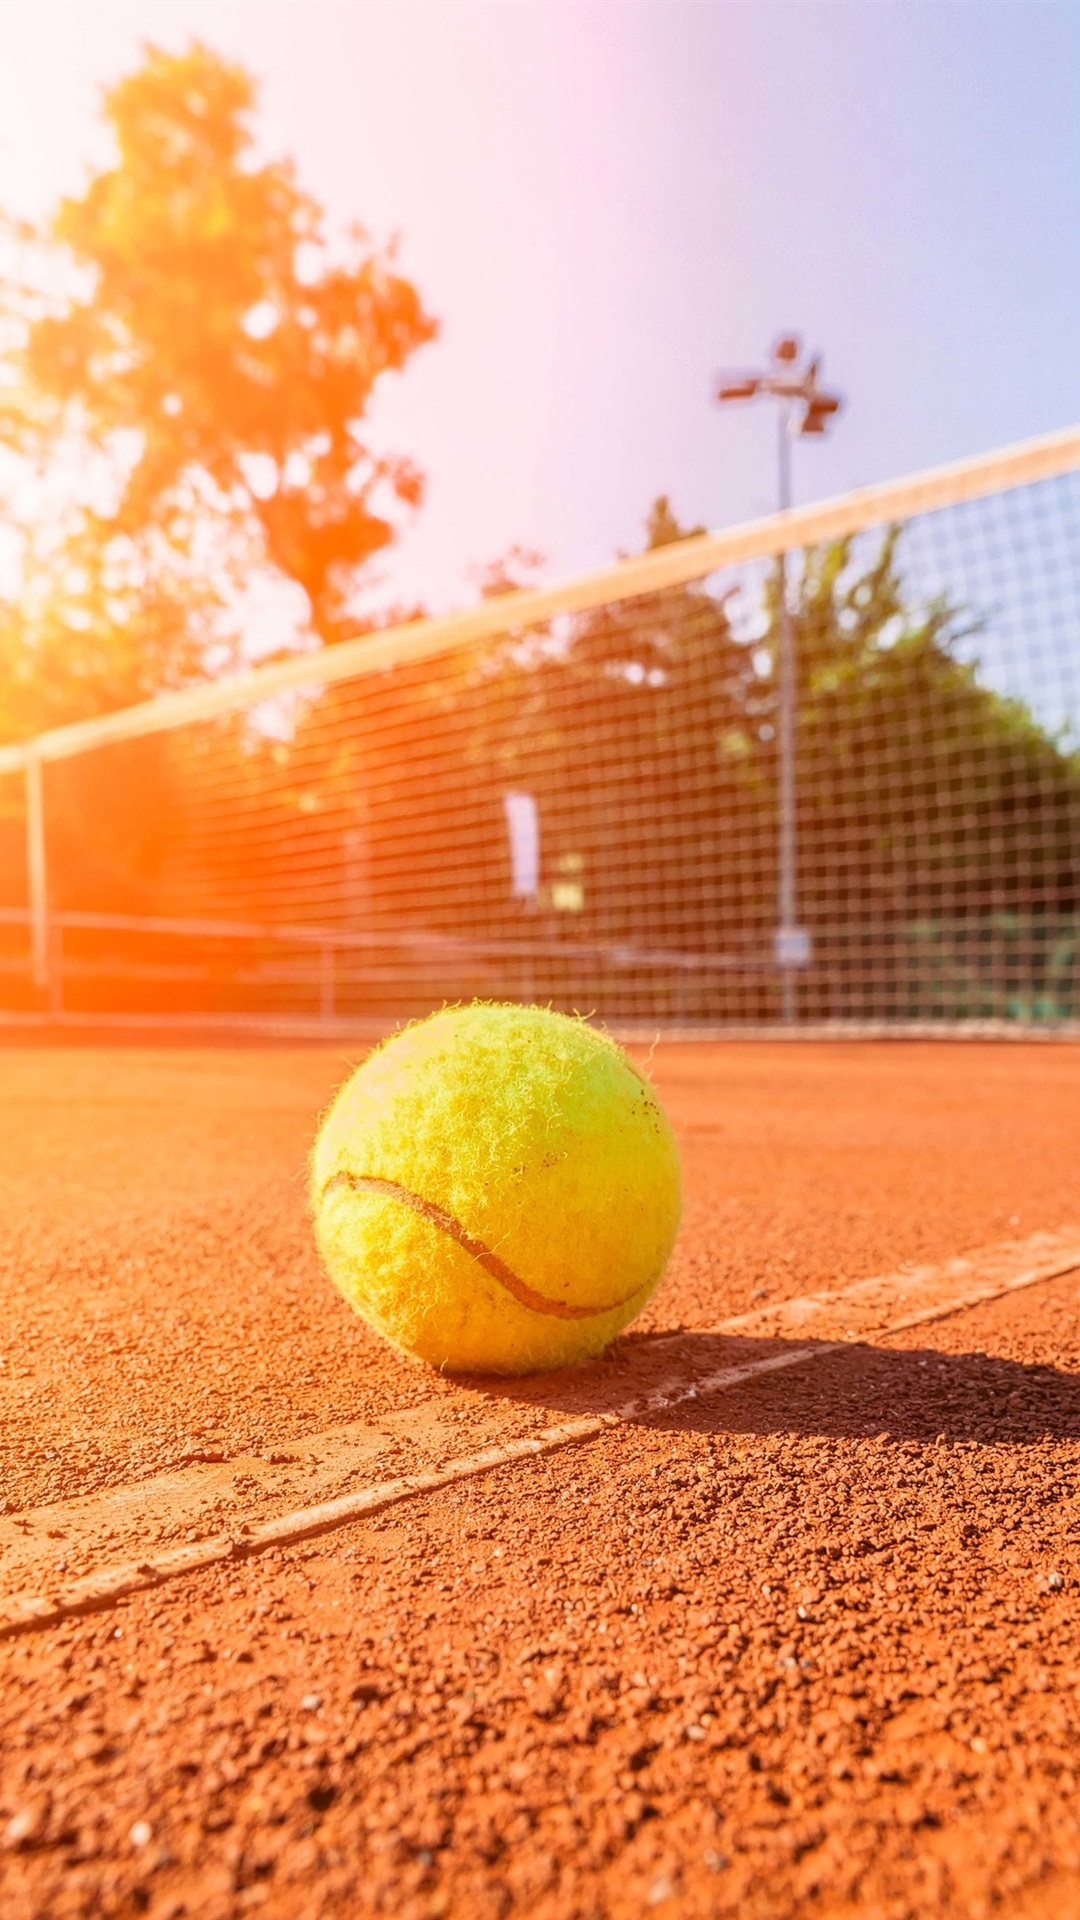 Sunny Day Summer Tennis Stadium Ground 1080x1920 Iphone 8 7 6 6s Plus Wallpaper Background Picture Image